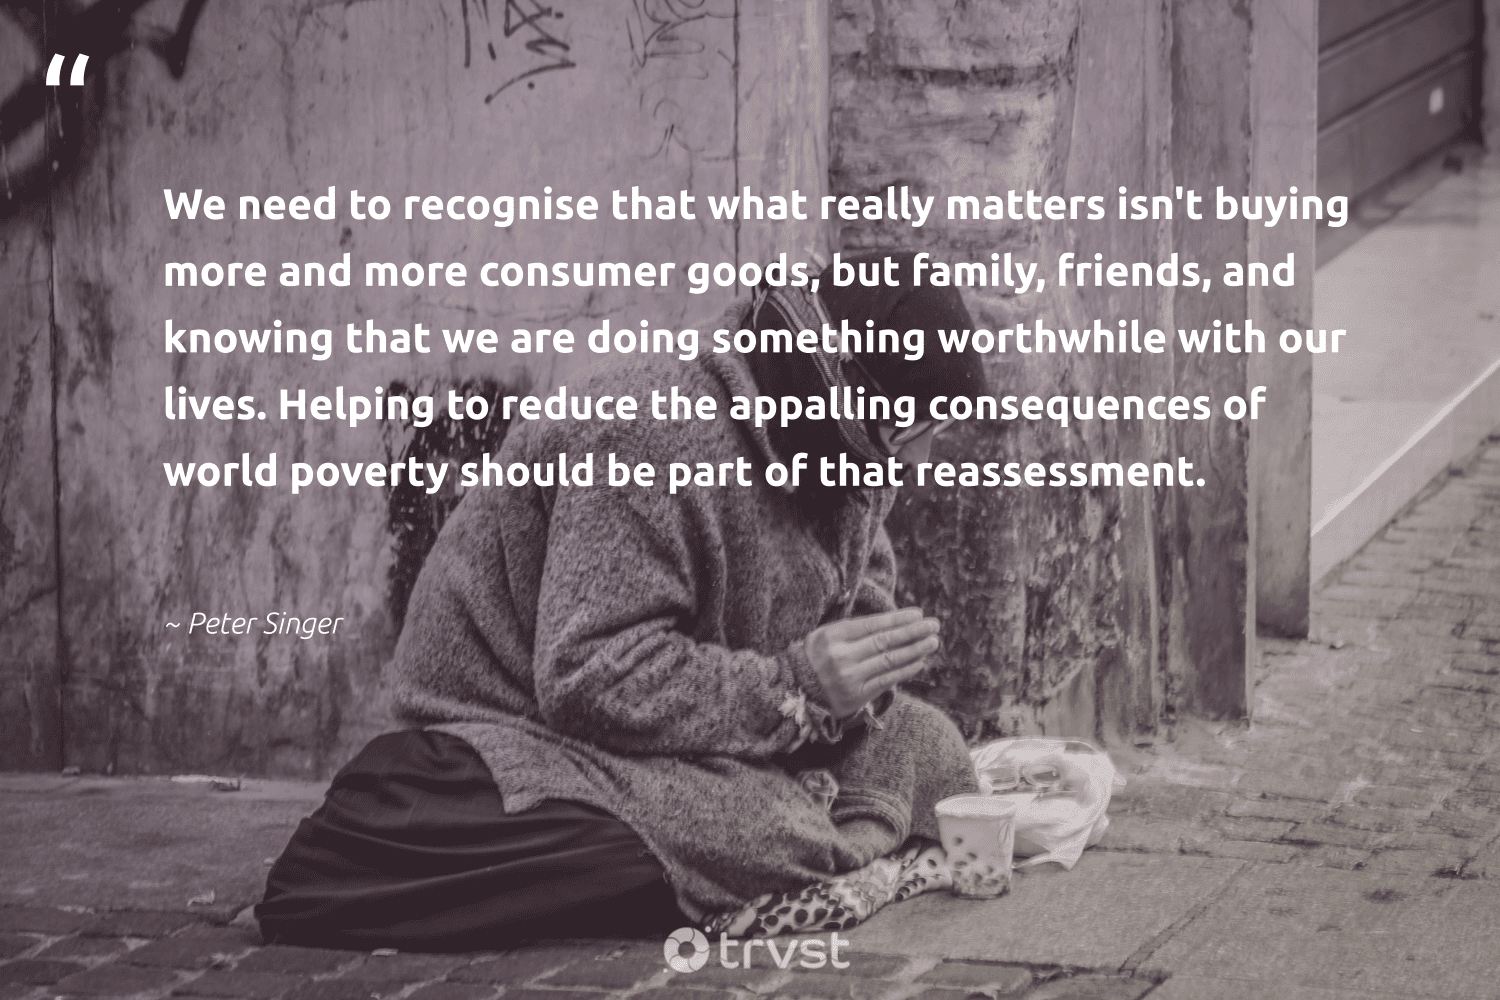 """""""We need to recognise that what really matters isn't buying more and more consumer goods, but family, friends, and knowing that we are doing something worthwhile with our lives. Helping to reduce the appalling consequences of world poverty should be part of that reassessment.""""  - Peter Singer #trvst #quotes #reduce #poverty #family #recycled #makeadifference #ecoactivism #takeaction #refurbished #sustainablefutures #sustainableliving"""